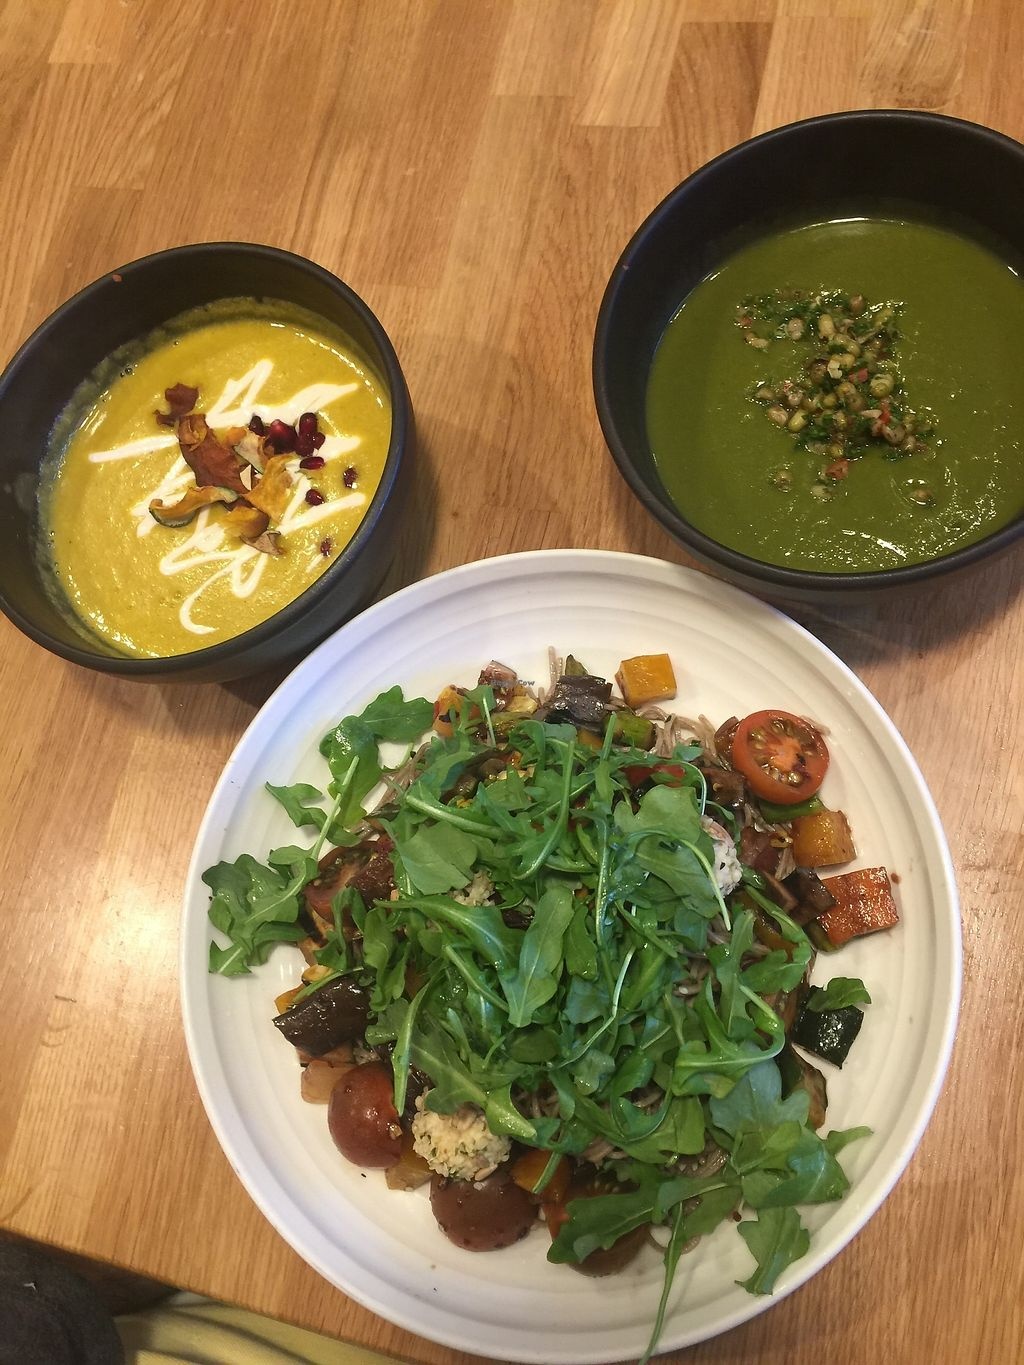 "Photo of Parakeet Cafe  by <a href=""/members/profile/vegansuncake"">vegansuncake</a> <br/>kobocha squash soup, vegan bowl and green soup <br/> January 13, 2018  - <a href='/contact/abuse/image/105567/346012'>Report</a>"